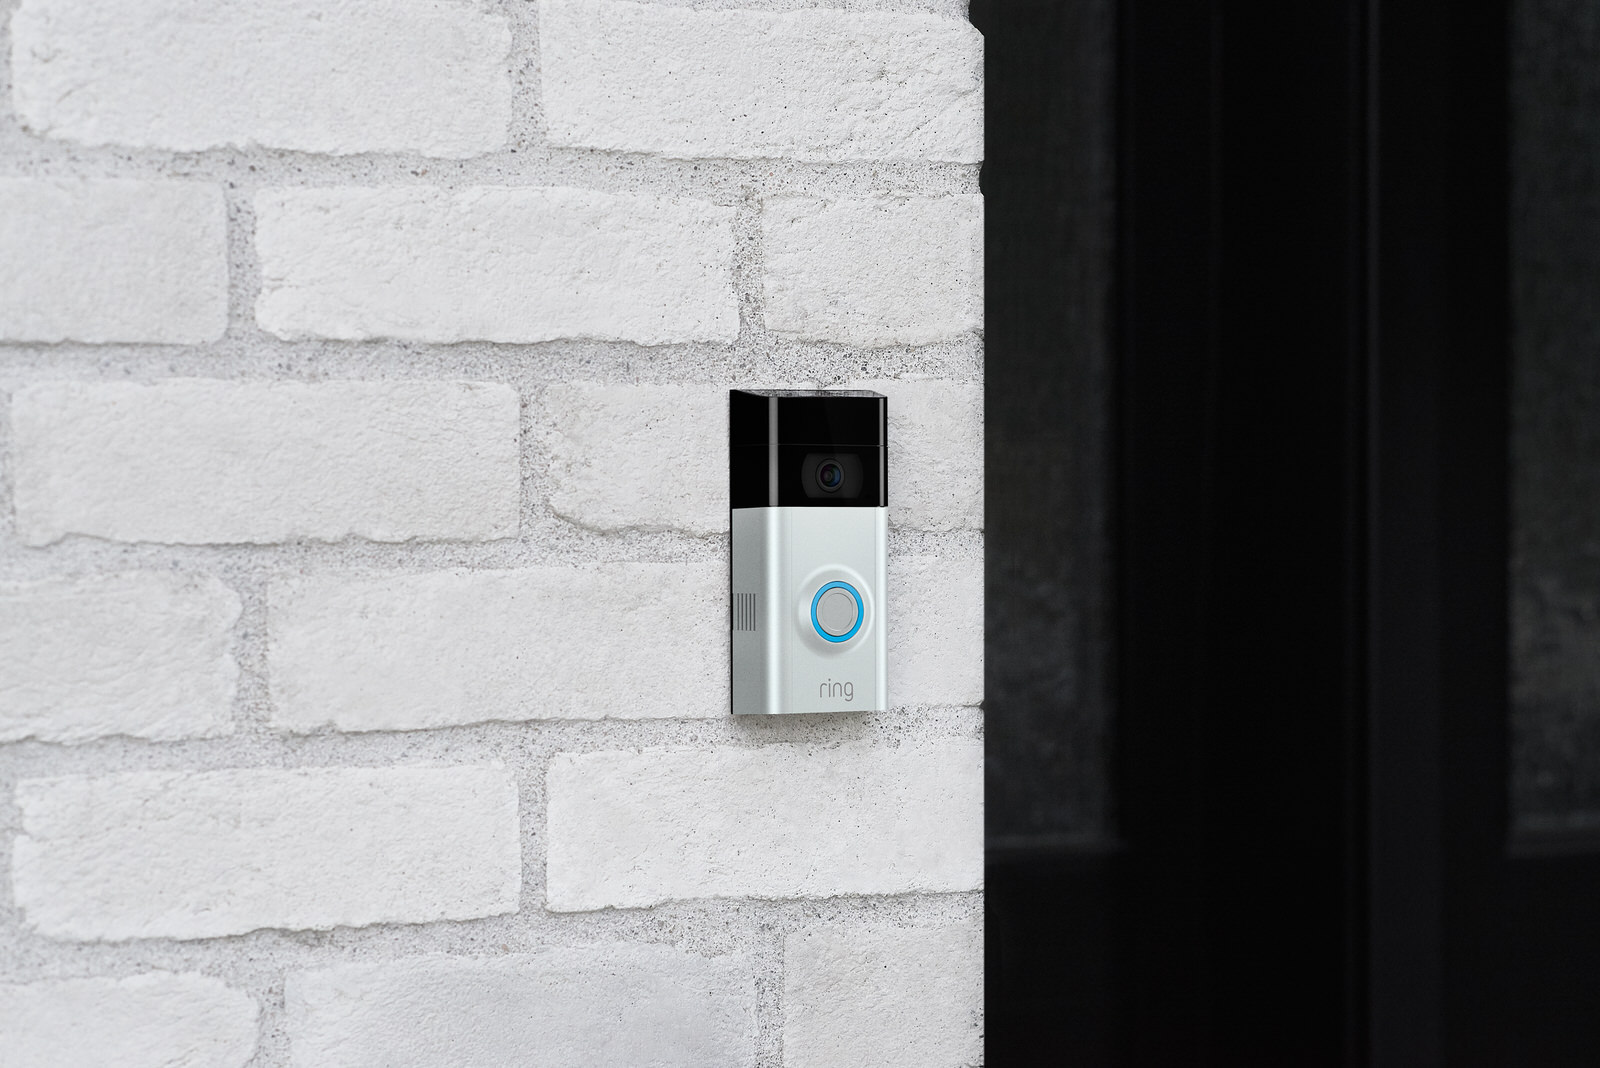 Smart_Home_Security_Ring_Video_Doorbell_white_wall_black_door.jpg